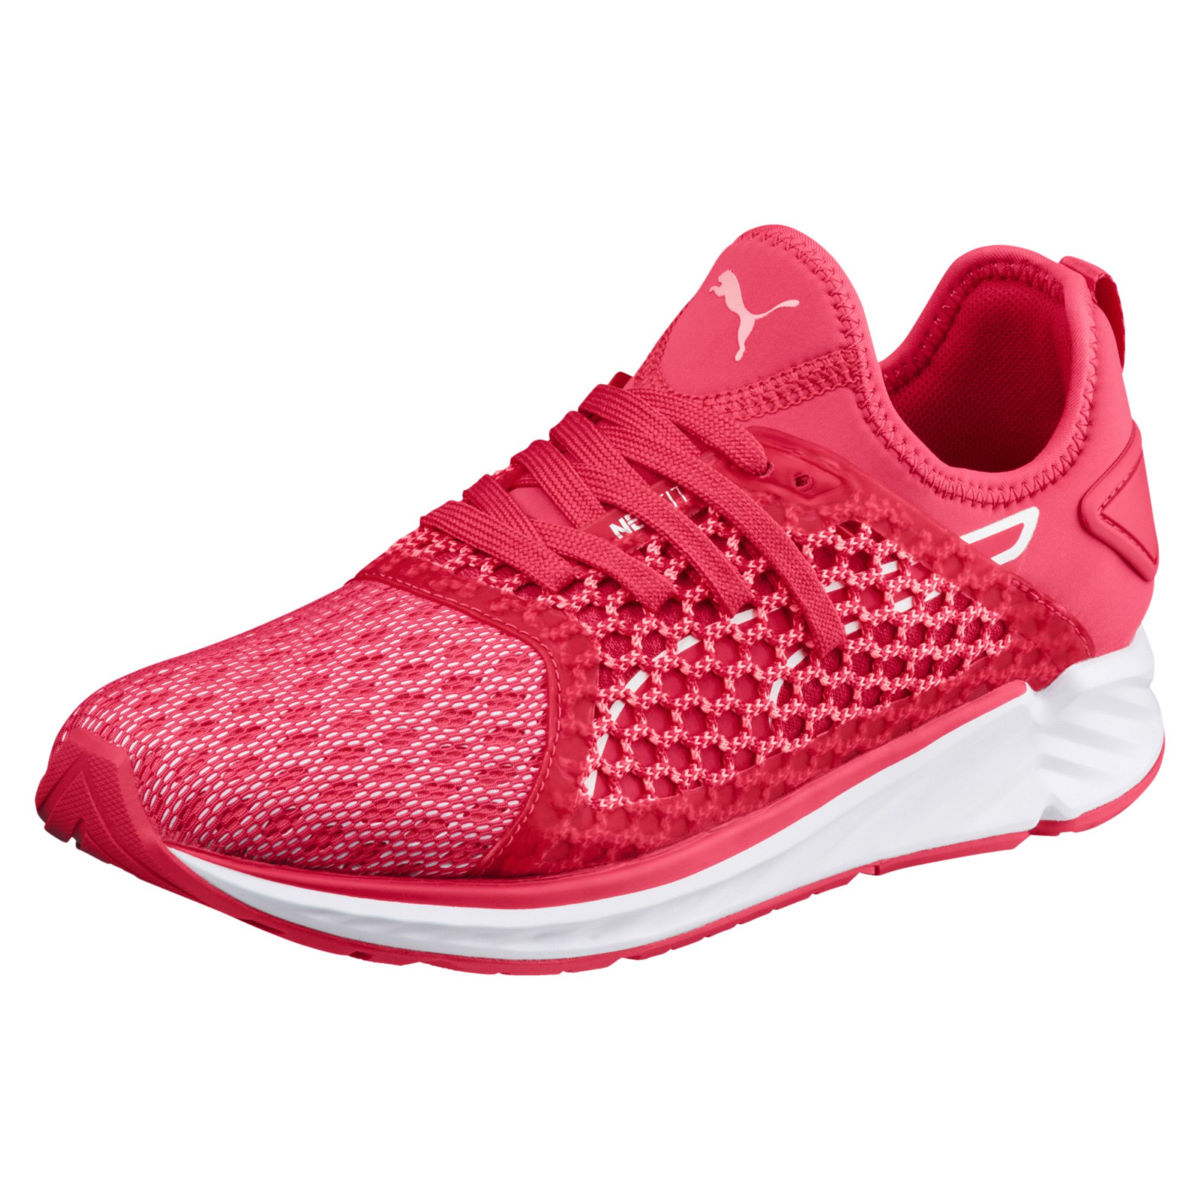 Chaussures Femme Puma Ignite 4 Netfit - UK 5.5 pink-fluopeach